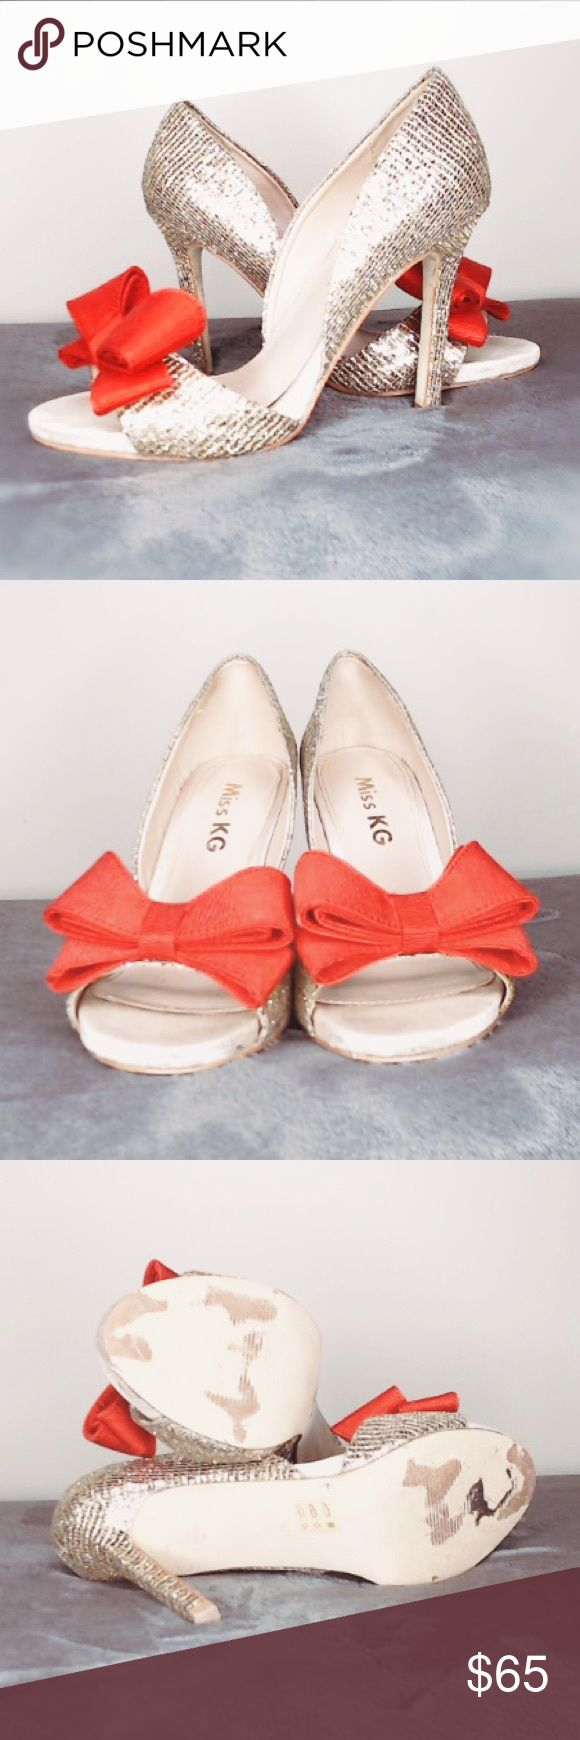 Miss KG 'Gabrielle' red&gold bow sandals 💃👠Miss KG is Kurt Geiger's other brand. These sandals are super cute! The red is a true warm red. The gold shoe is glittery but not tacky. Gently worn for one wedding. I don't have the box anymore, I hope that's ok. Kurt Geiger Shoes Heels